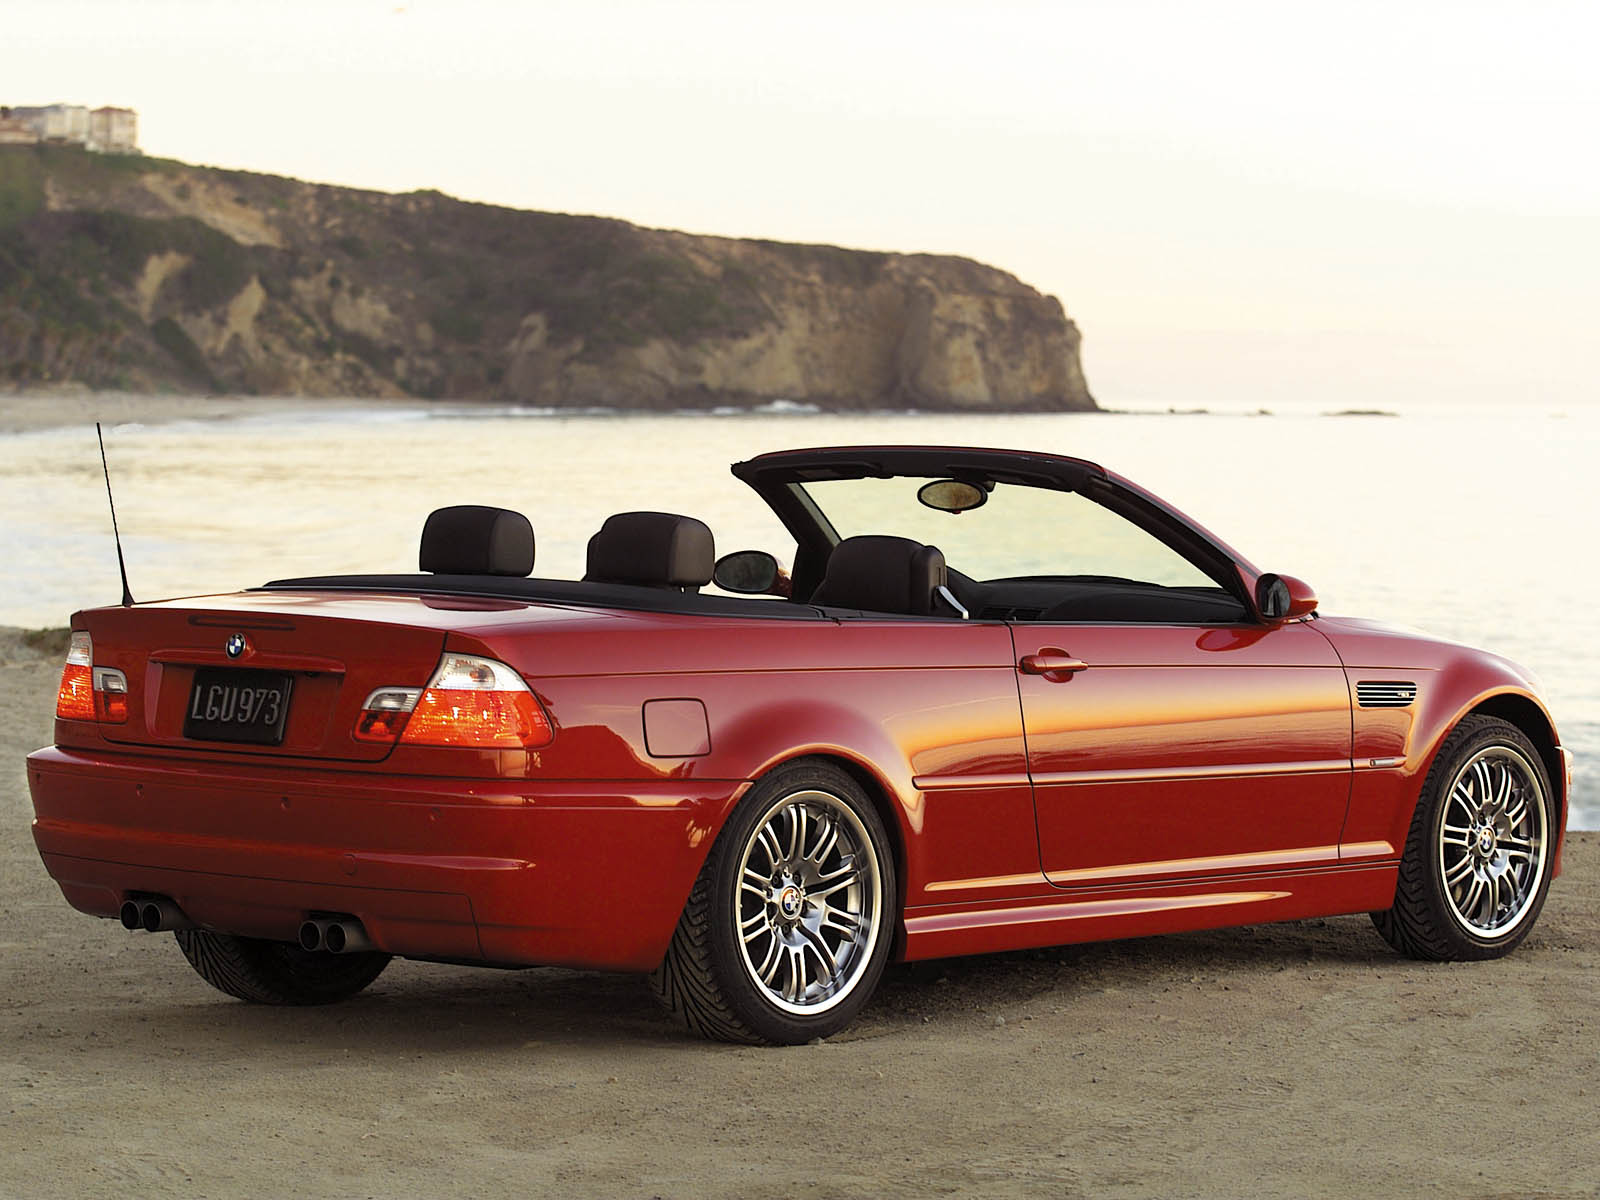 idbeherfriend bmw m3 e46 convertible white images. Black Bedroom Furniture Sets. Home Design Ideas